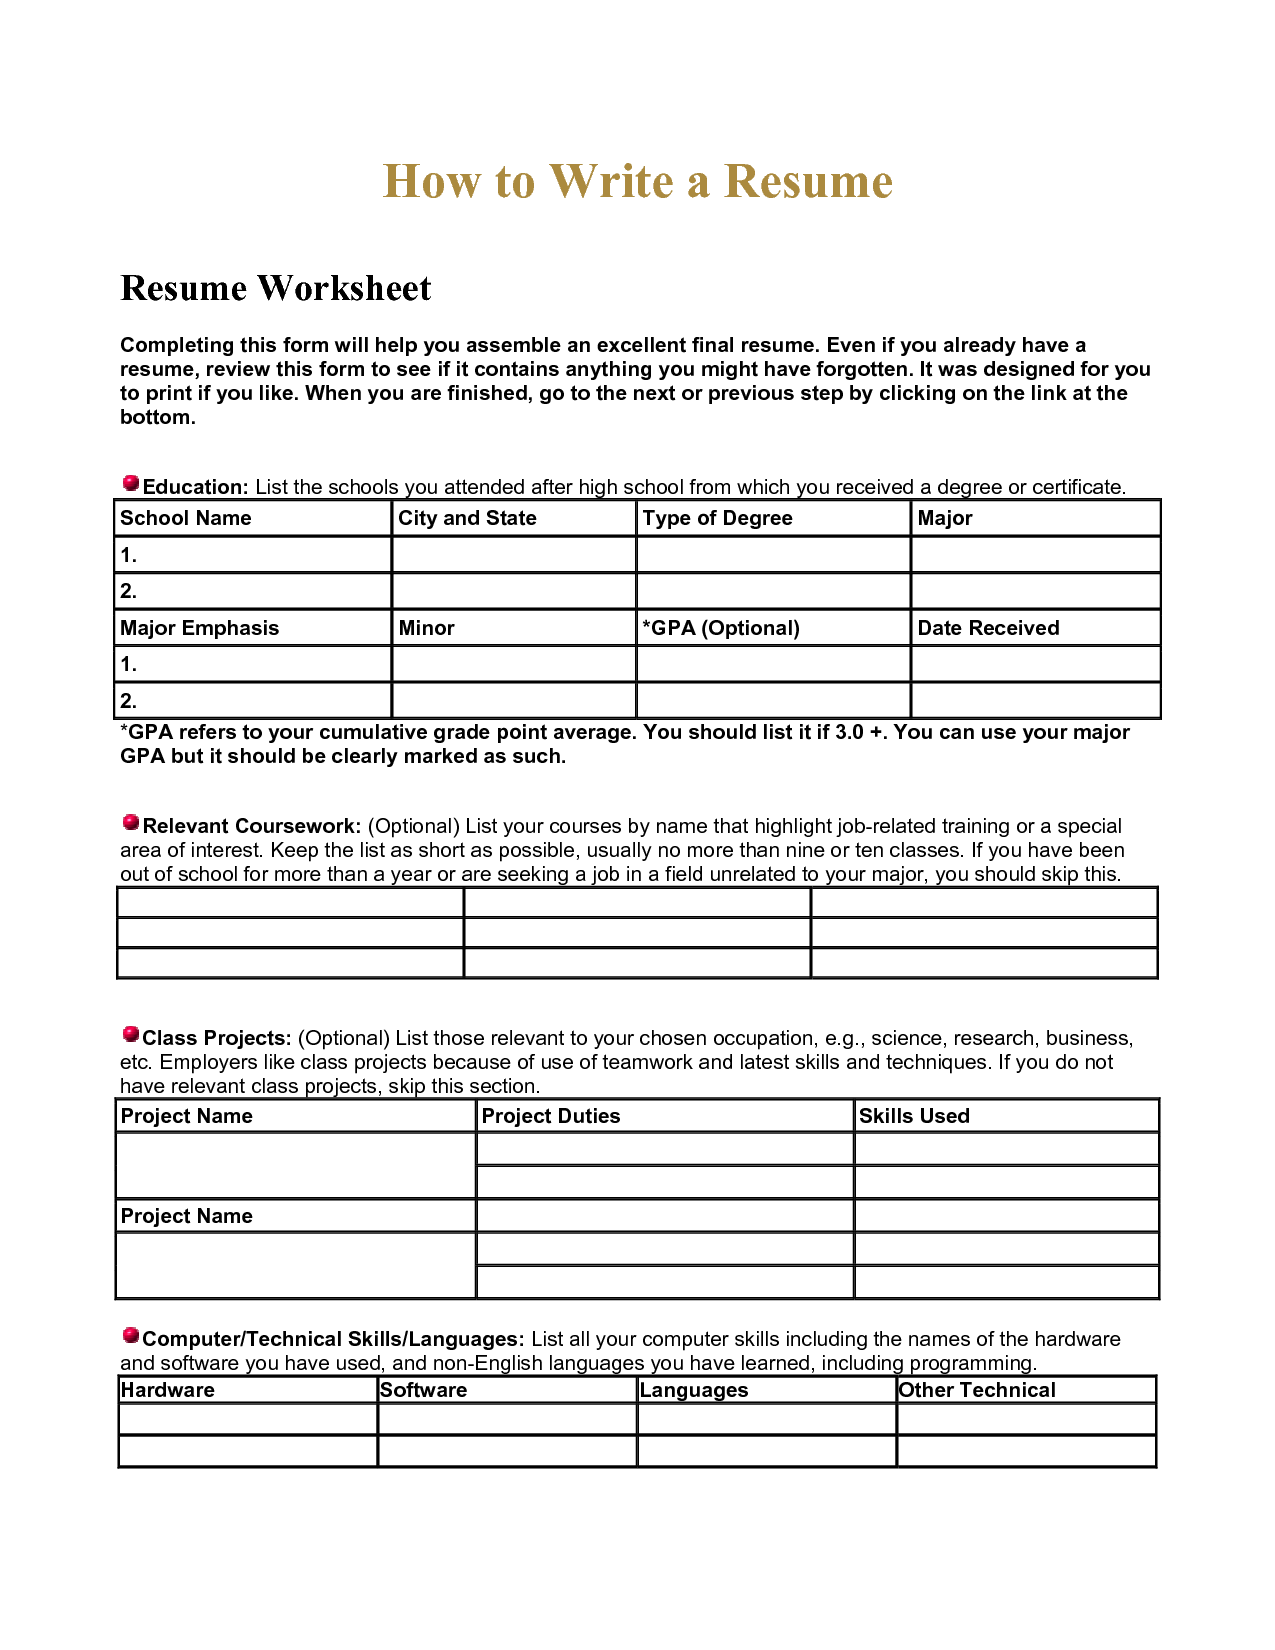 high school resume worksheet using your academic experiences to high school resume worksheet using your academic experiences to build a resume